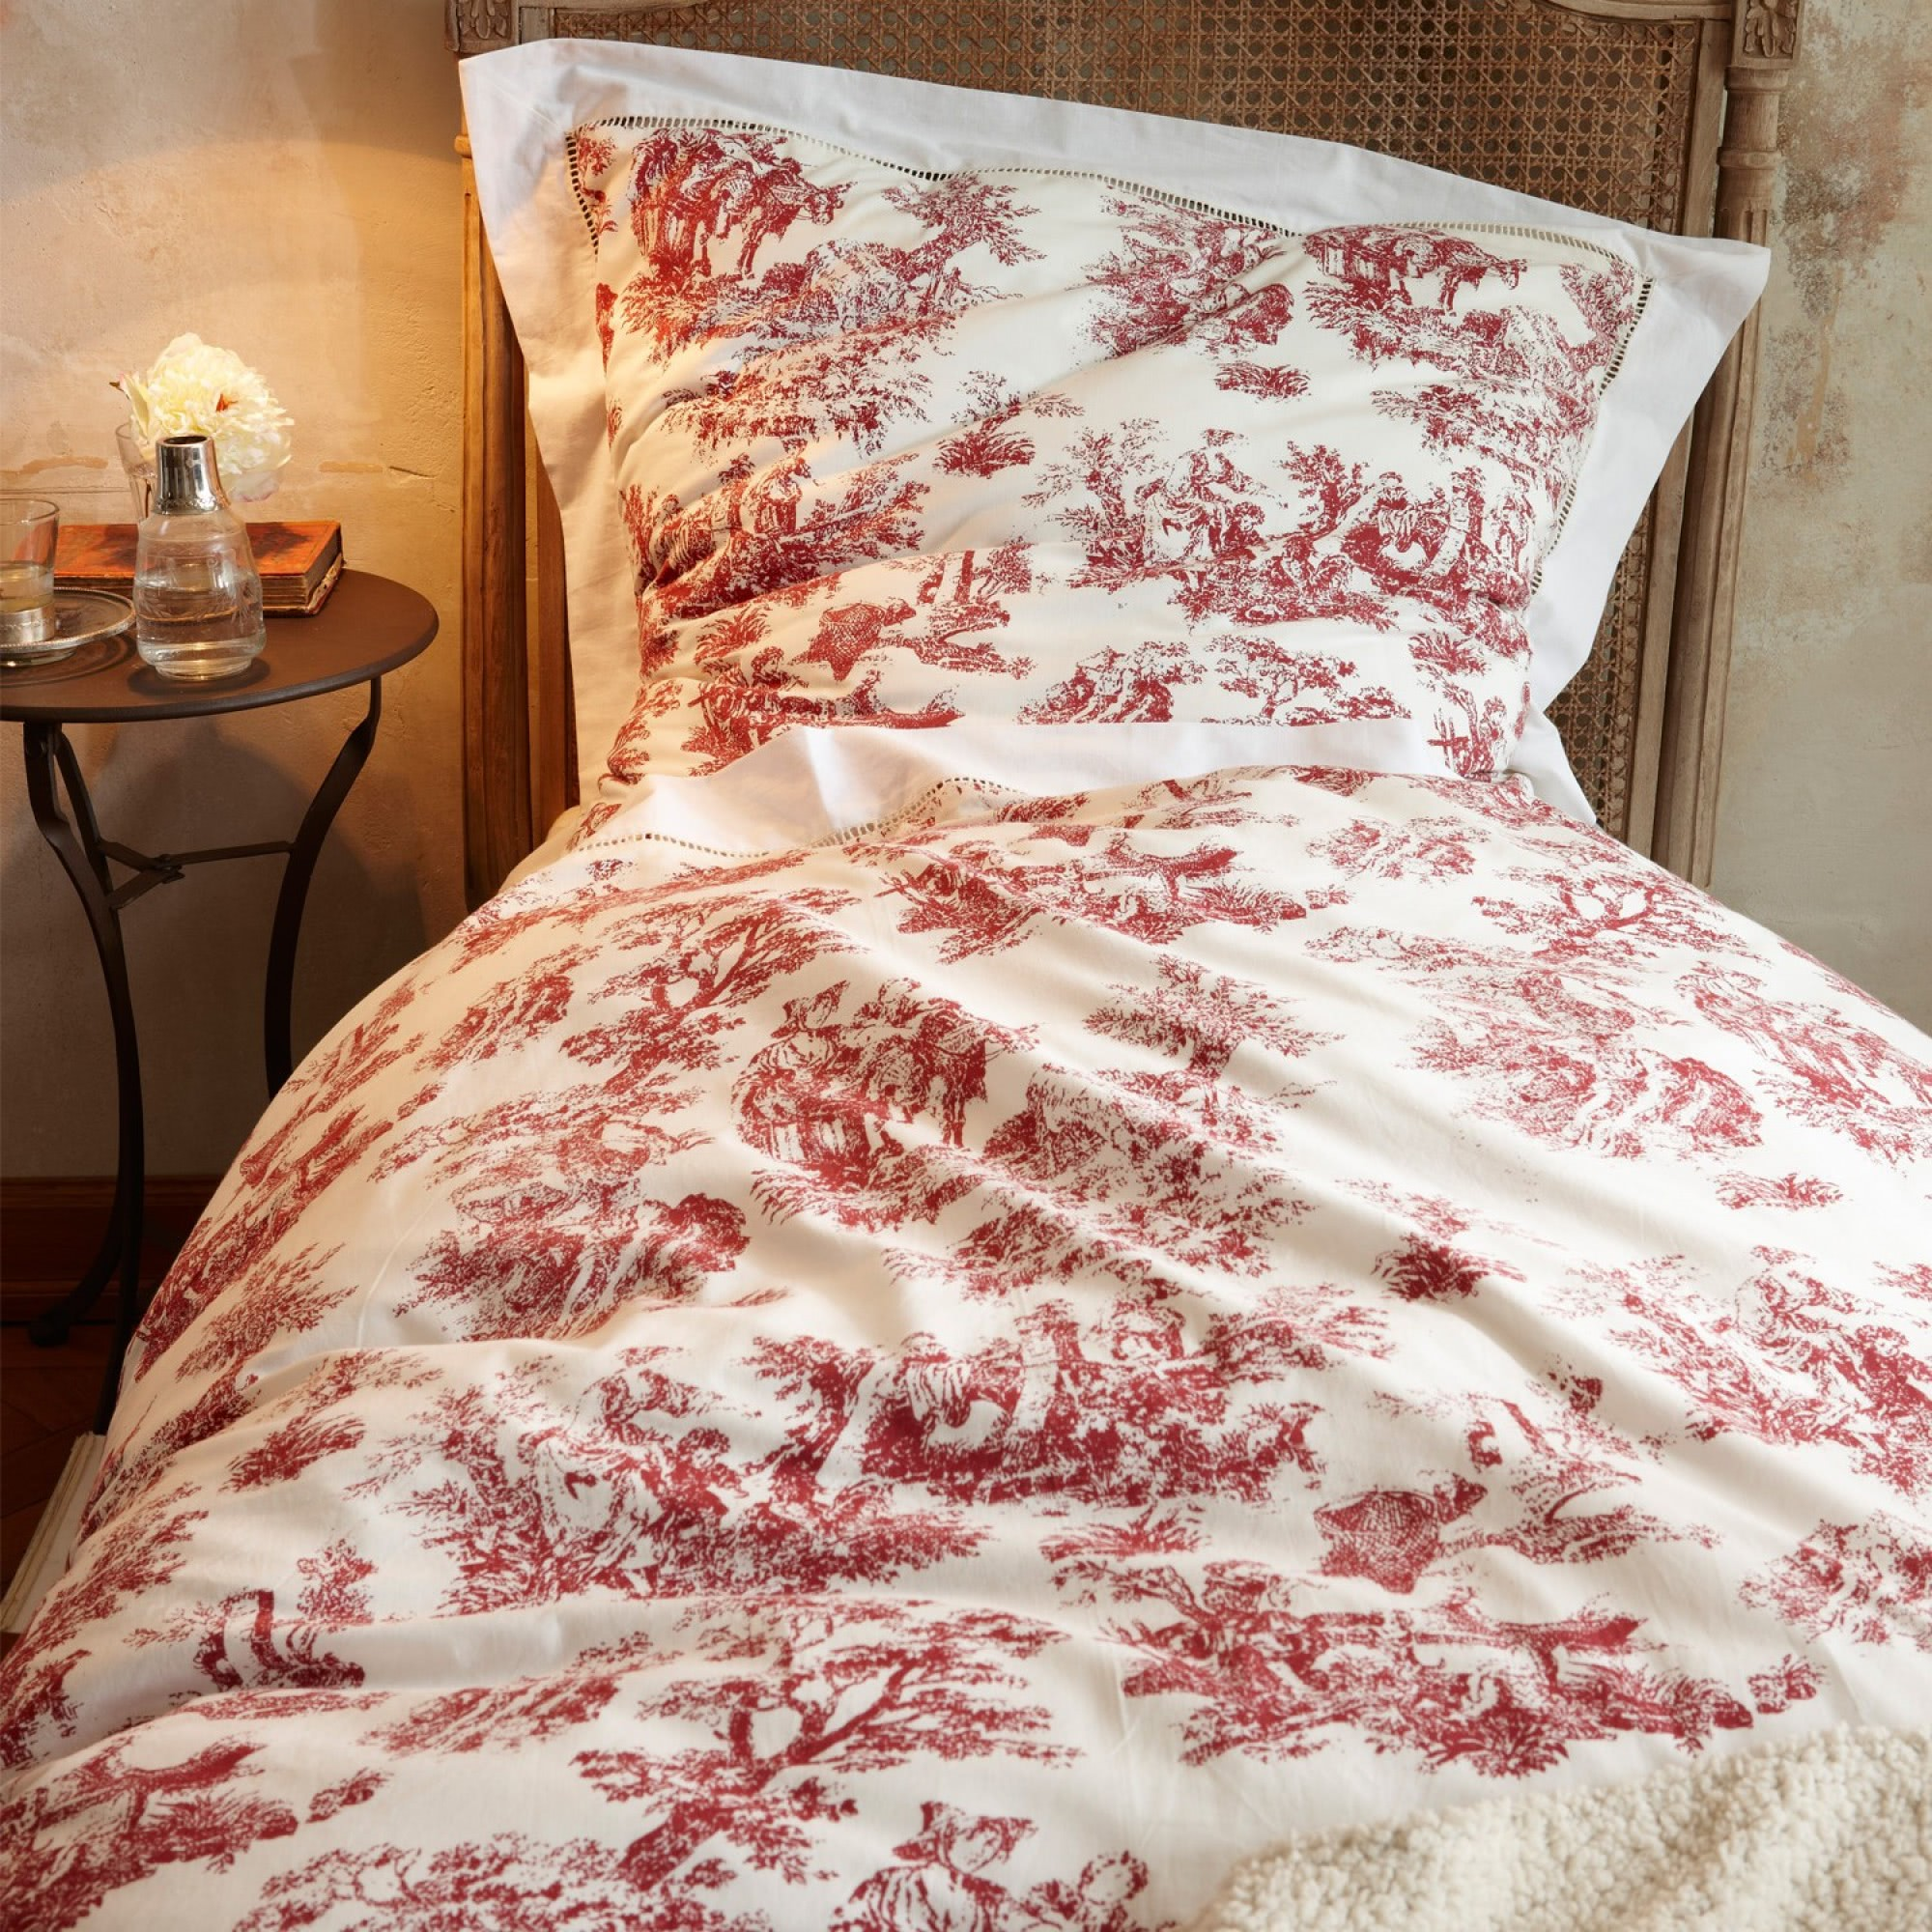 bettw sche toile rouge loberon coming home. Black Bedroom Furniture Sets. Home Design Ideas